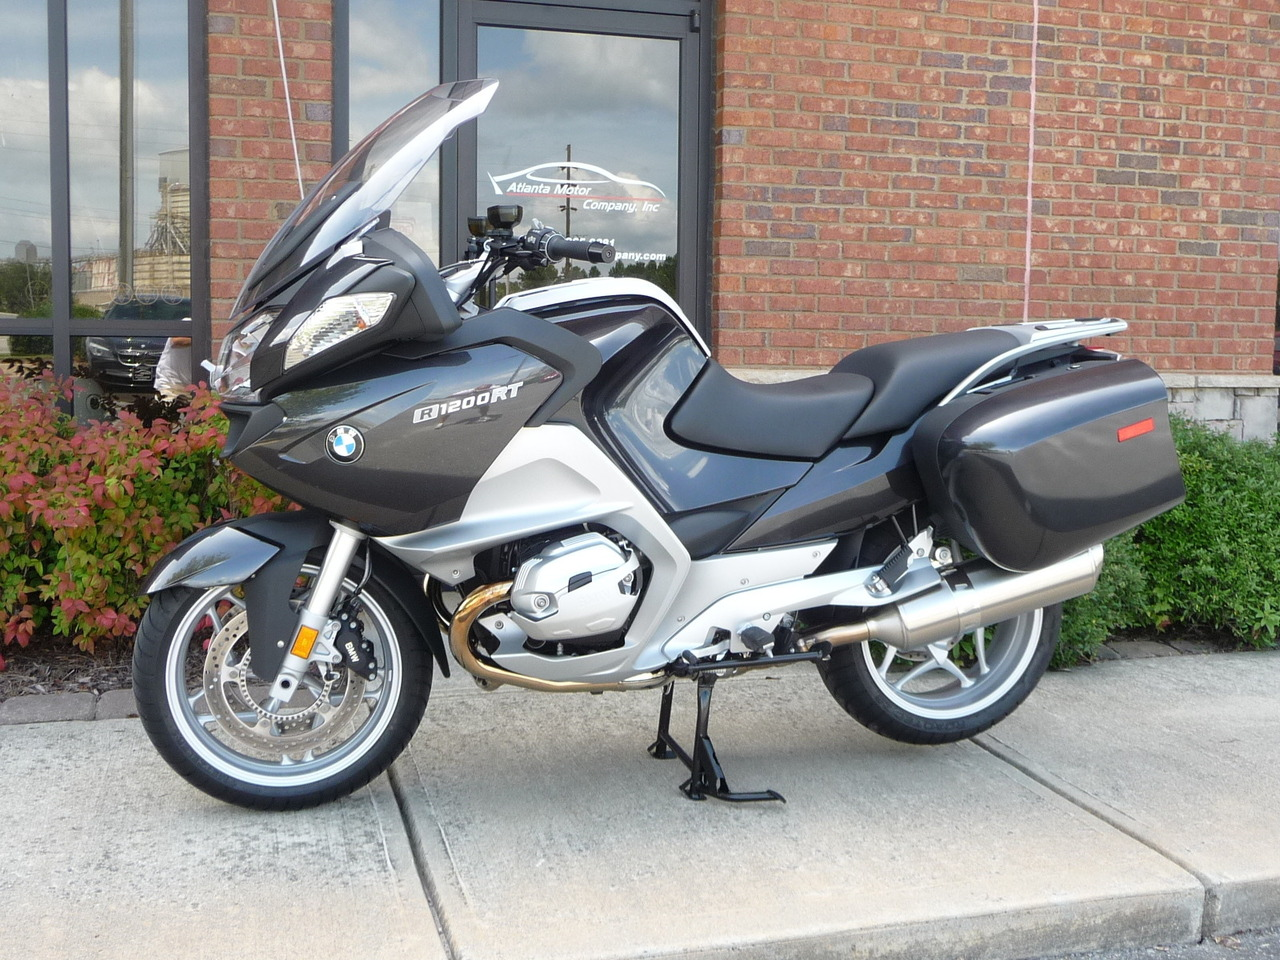 2011 bmw r 1200 rt sport touring motorcycle from flowery branch ga today sale 17 998. Black Bedroom Furniture Sets. Home Design Ideas